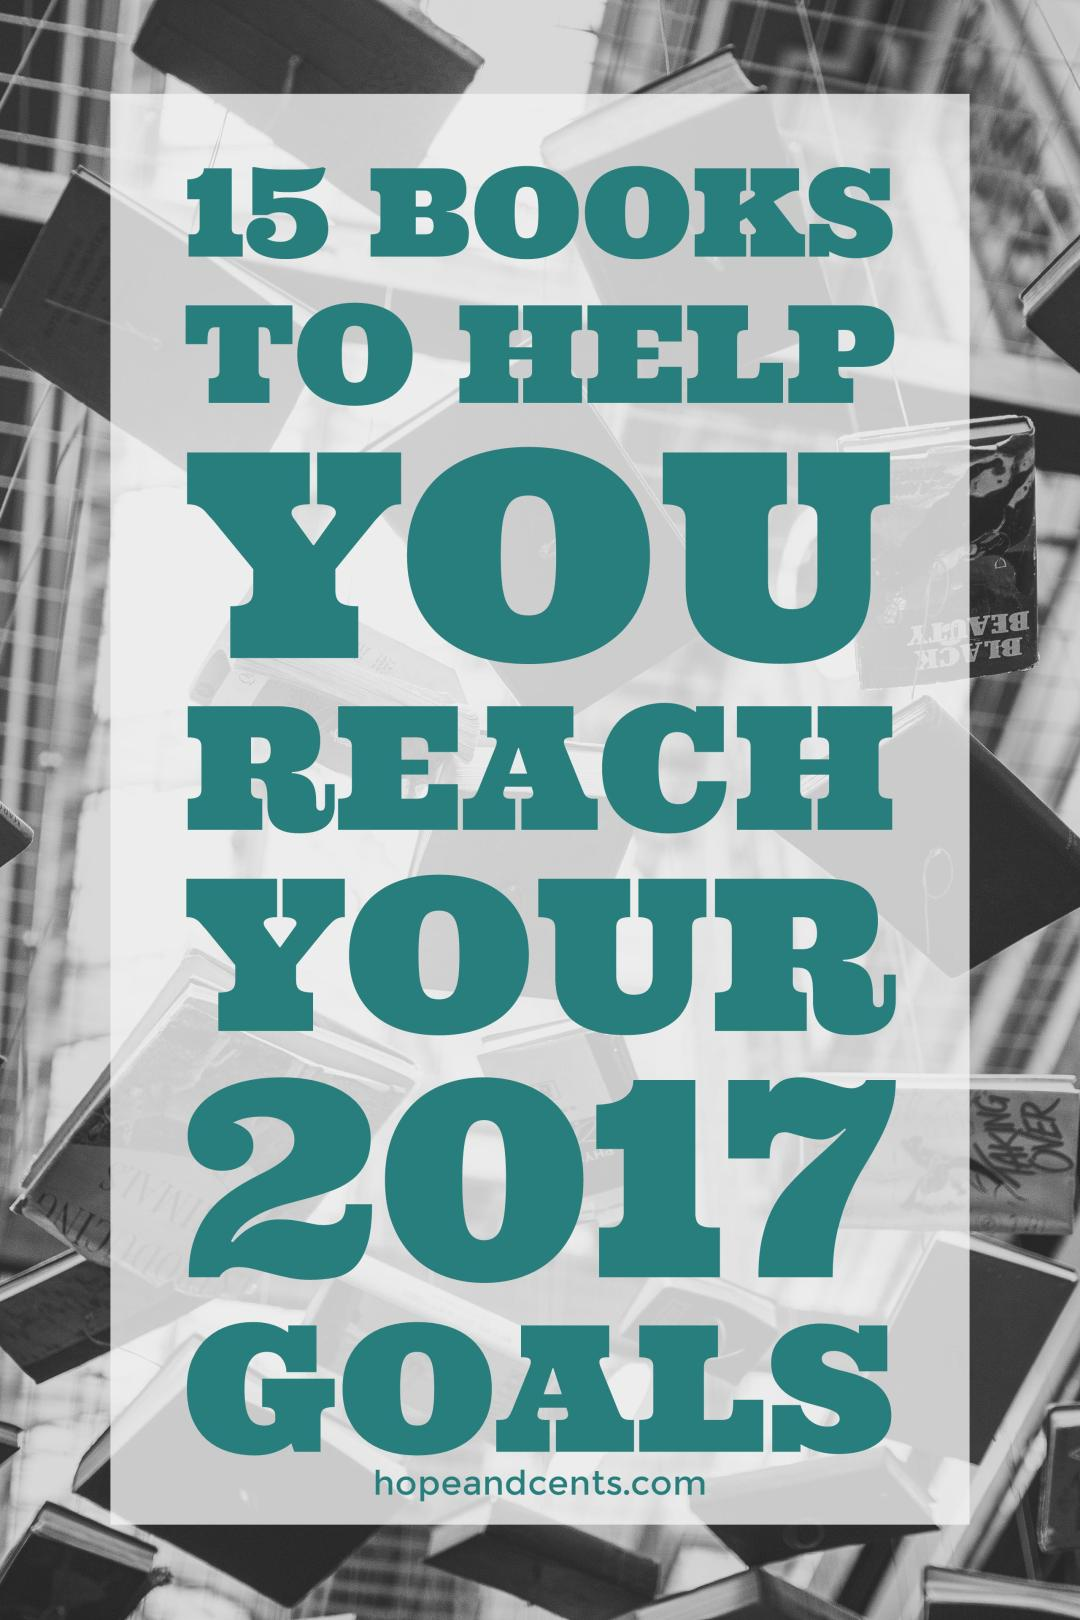 15 Books to Help You Reach Your 2017 Goals